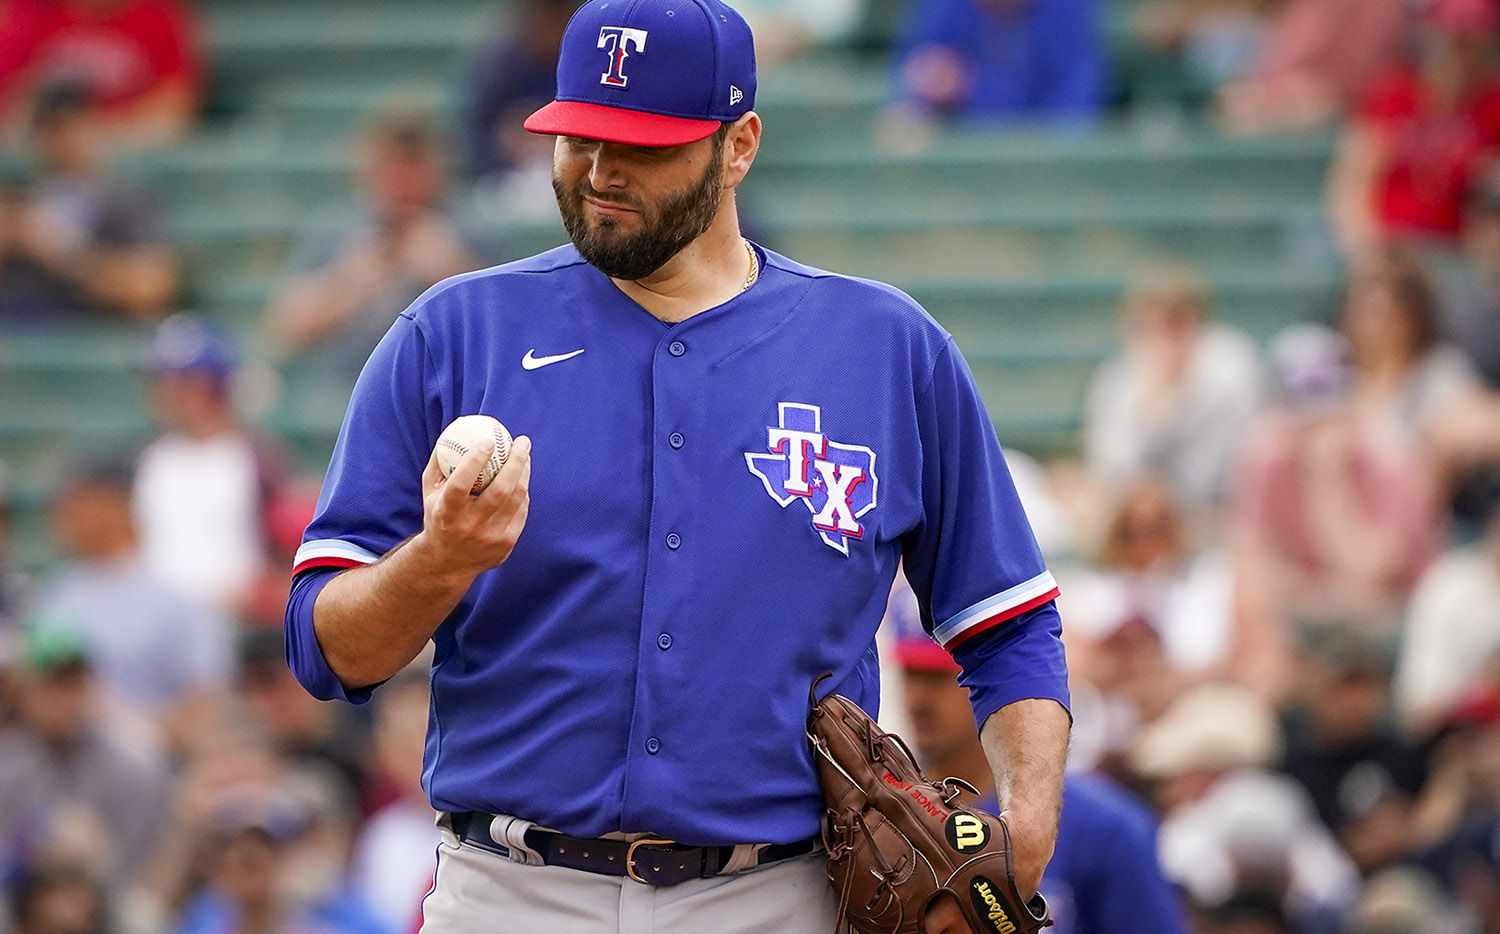 Texas Rangers pitcher Lance Lynn gets a new ball after giving up a run on a single by Los Angeles Angels designated hitter Shohei Ohtani during the first inning of a spring training game at Tempe Diablo Stadium on Friday, Feb. 28, 2020, in Tempe, Ariz. (Smiley N. Pool/The Dallas Morning News)